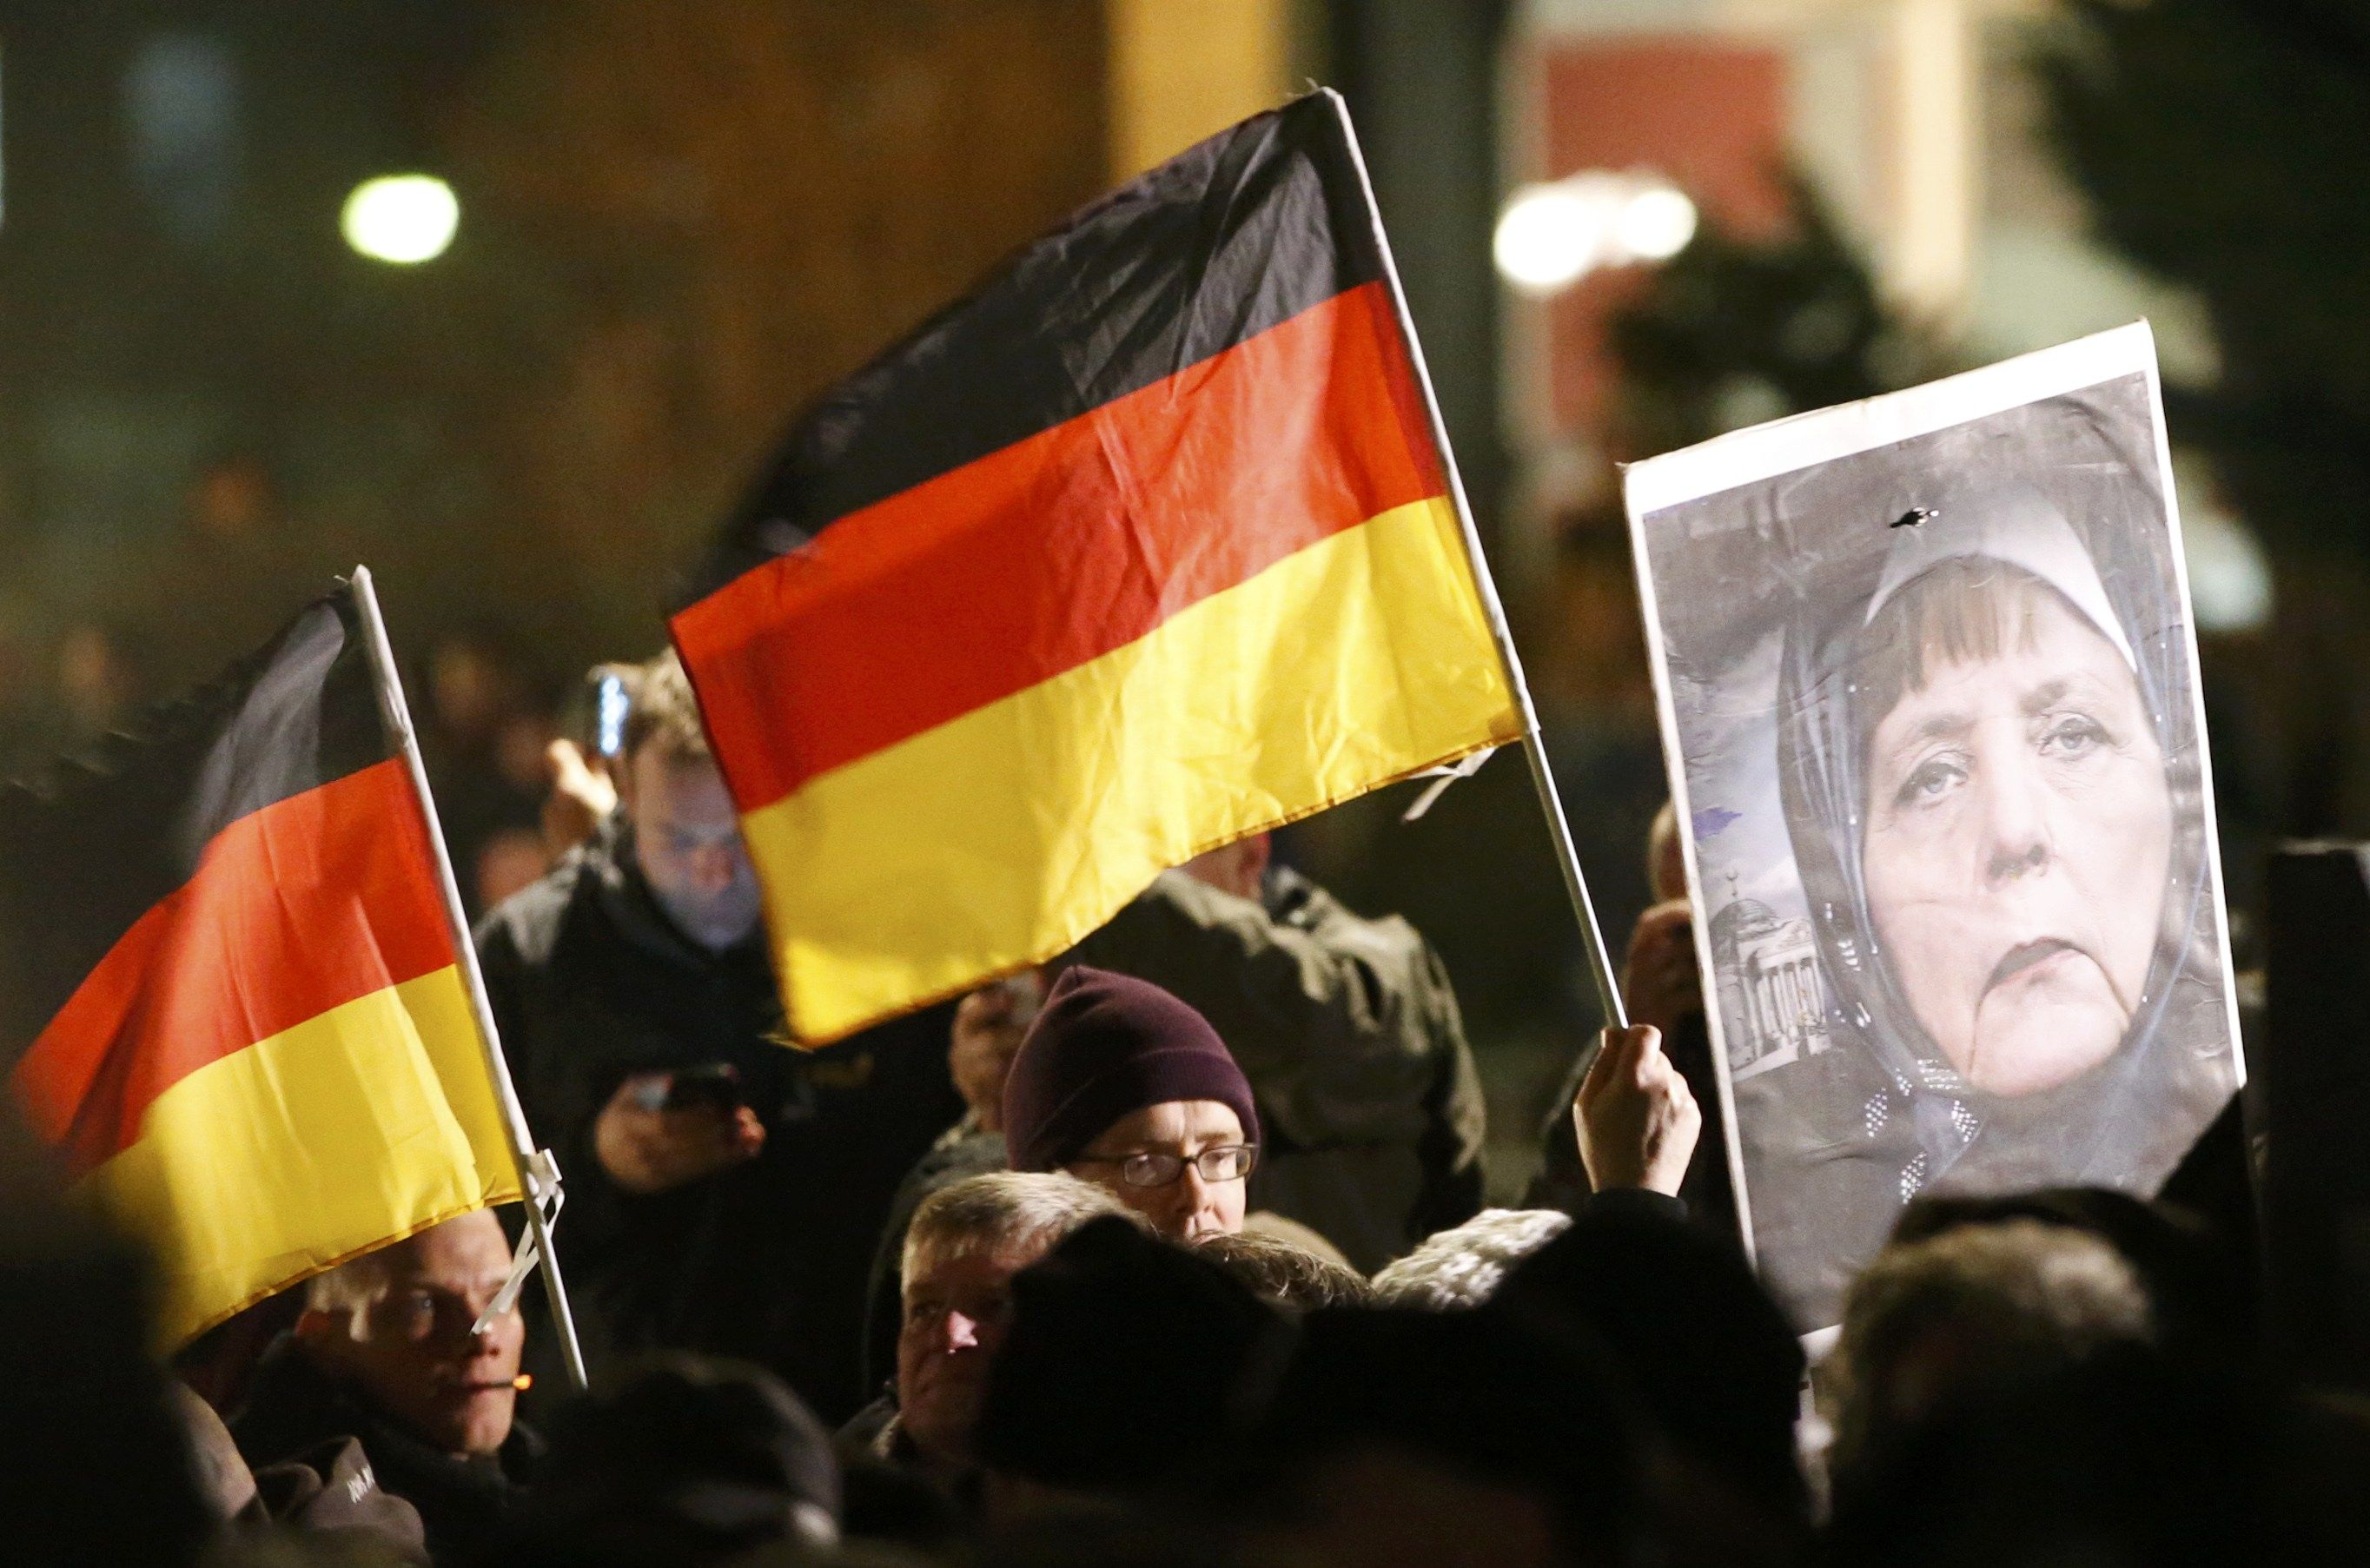 Supporters of anti-immigration movement Patriotic Europeans Against the Islamisation of the West (PEGIDA) hold German flags and a portrait depicting German Chancellor Angela Merkel during a demonstration in Dresden January 12, 2015.       REUTERS/Fabrizio Bensch (GERMANY  - Tags: POLITICS CIVIL UNREST)